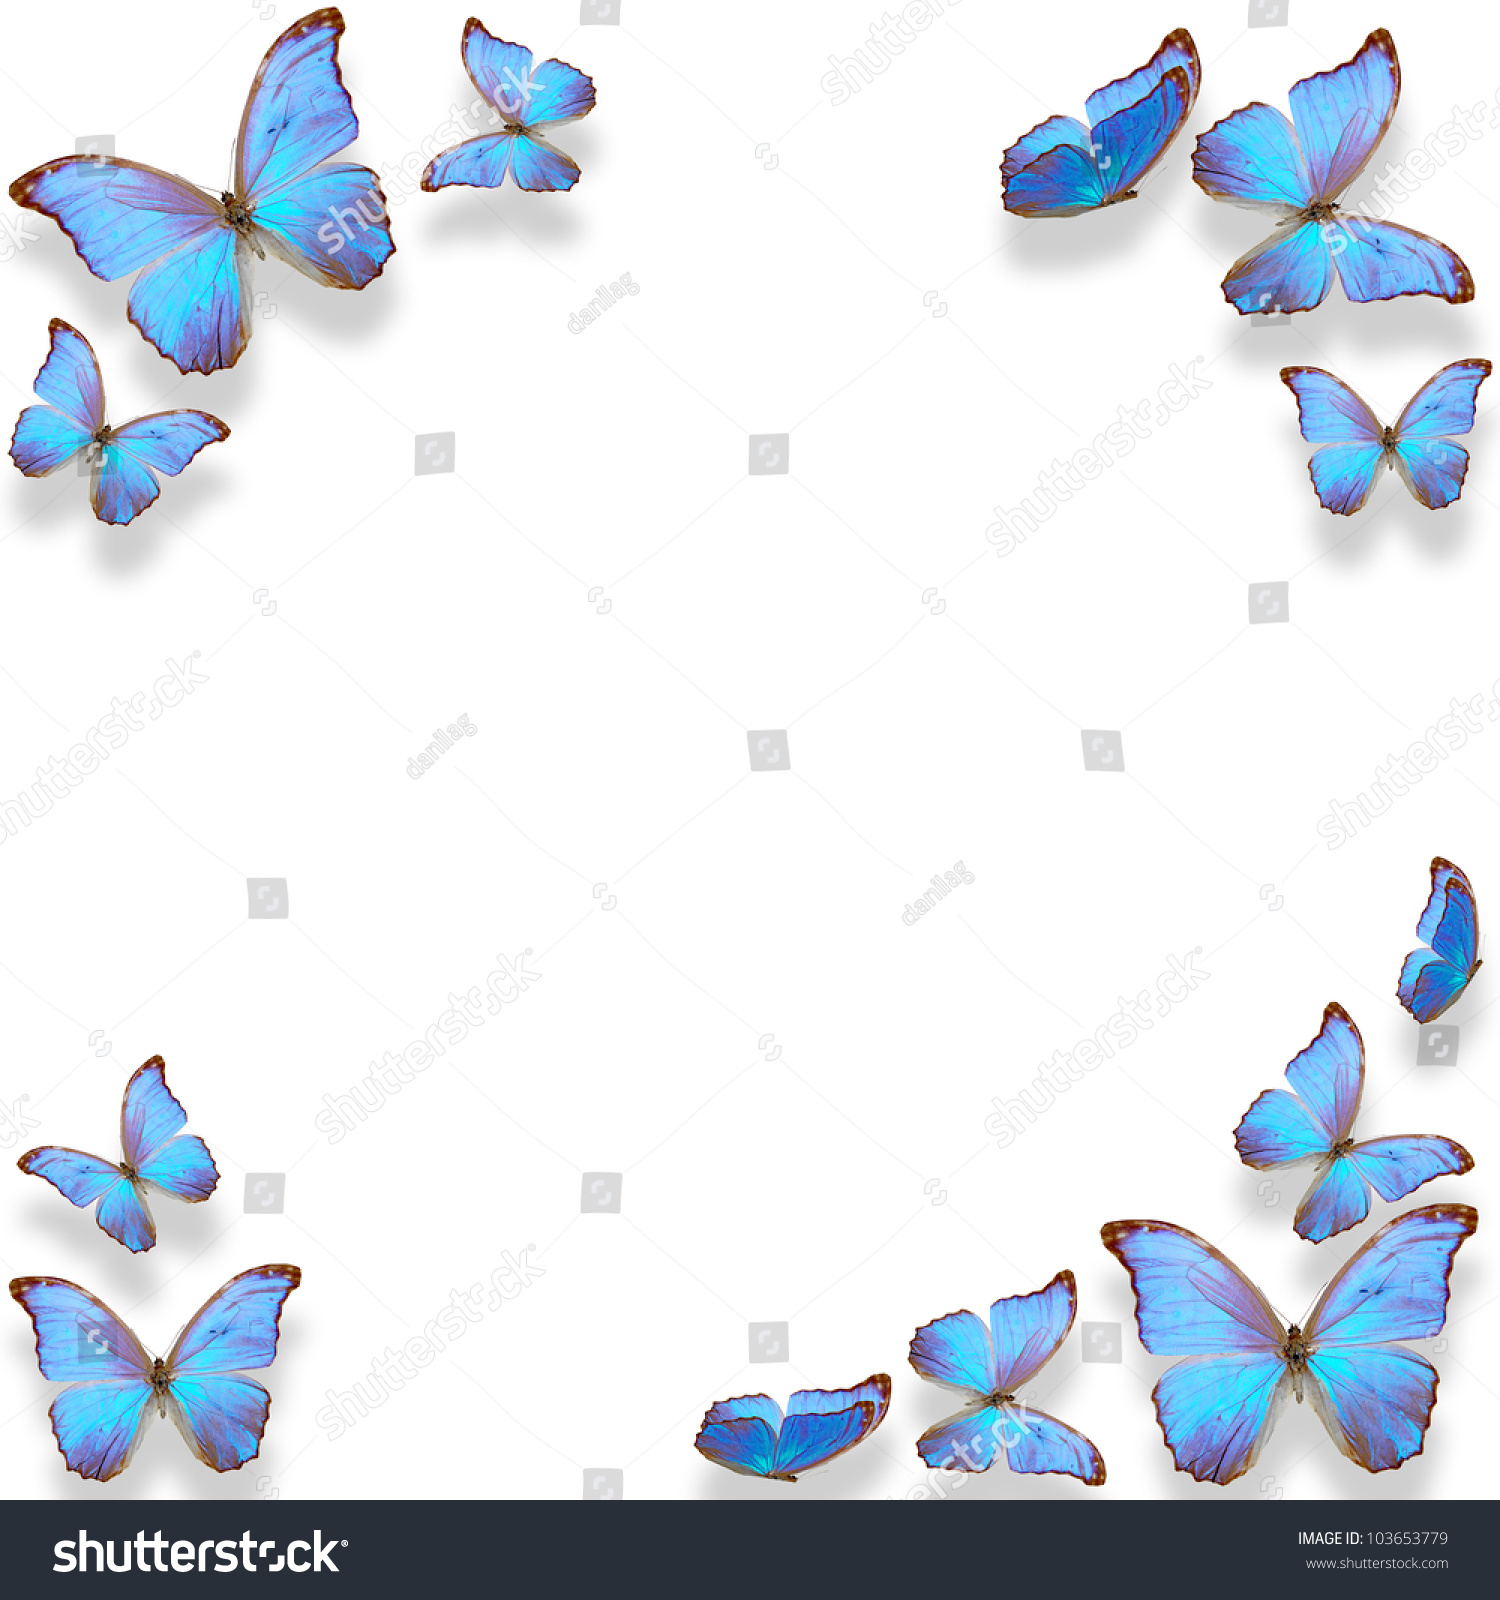 frame of blue butterfly on white background